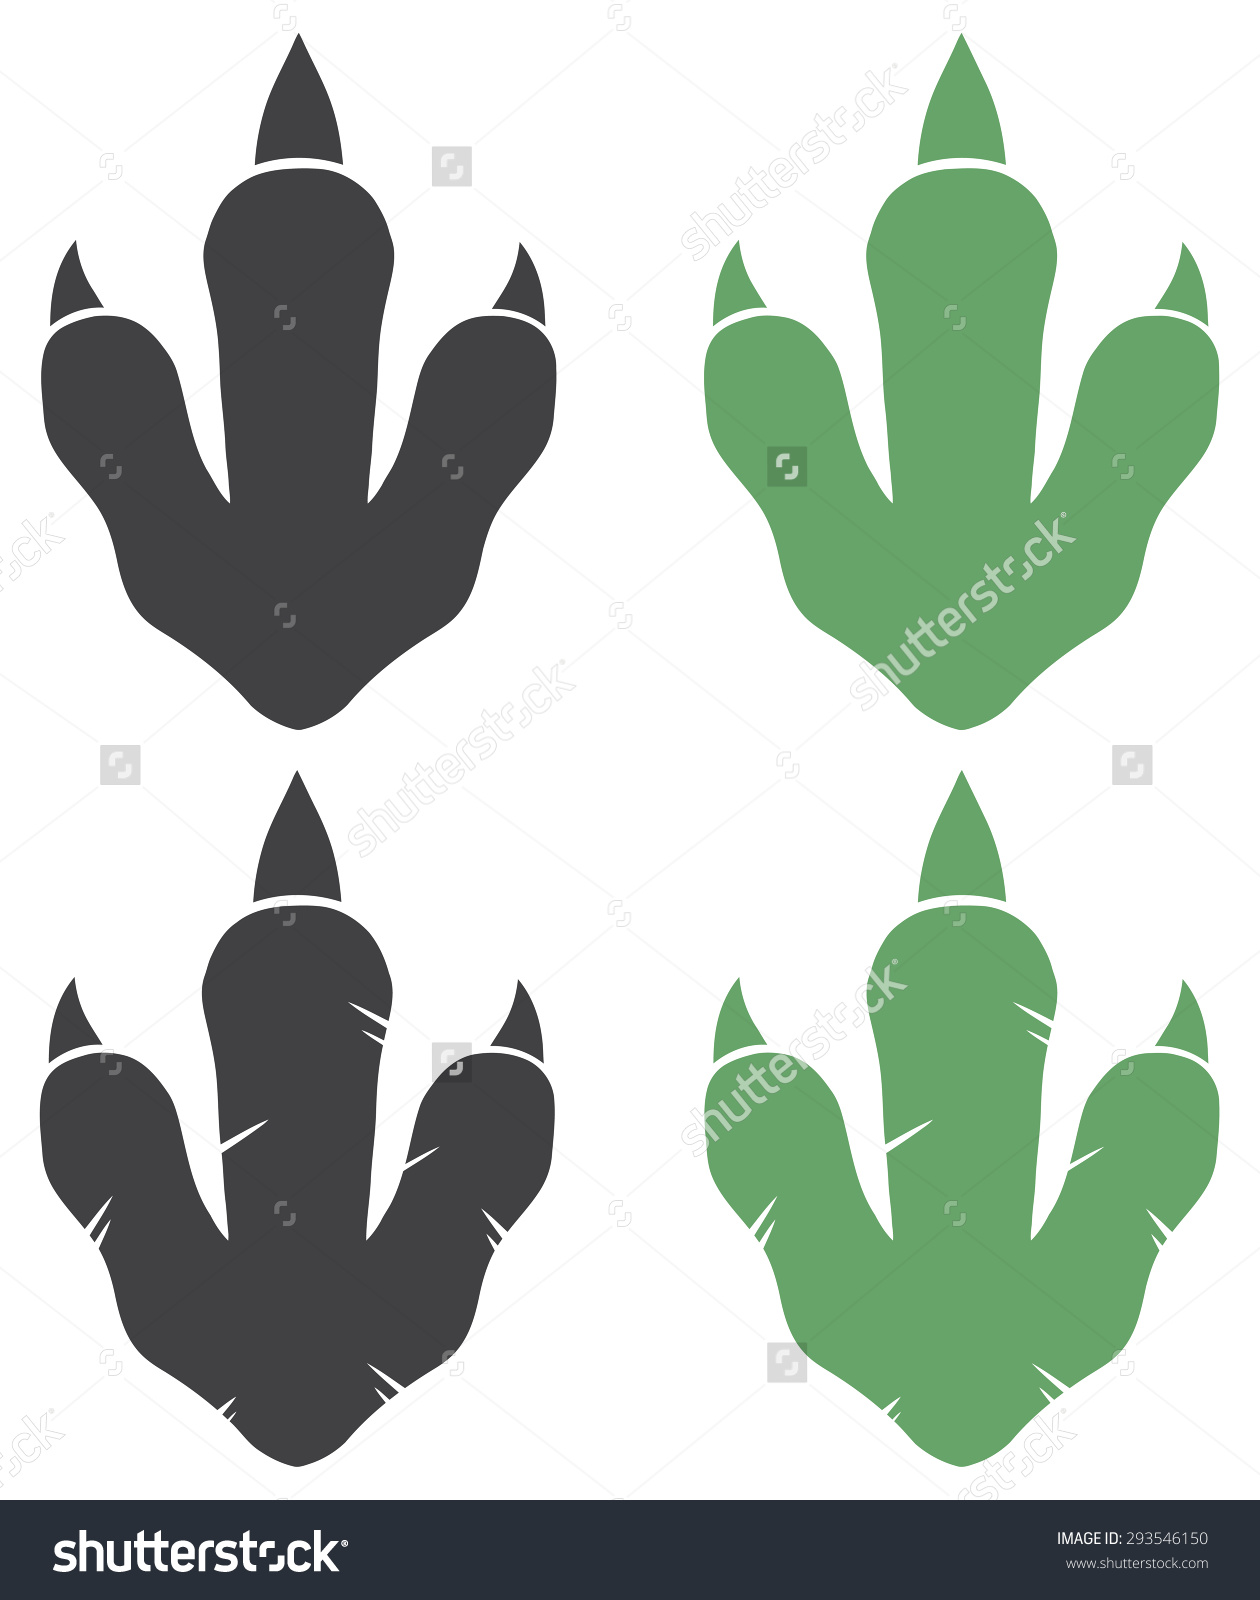 Jurassic world dinosaurs footprint clipart.